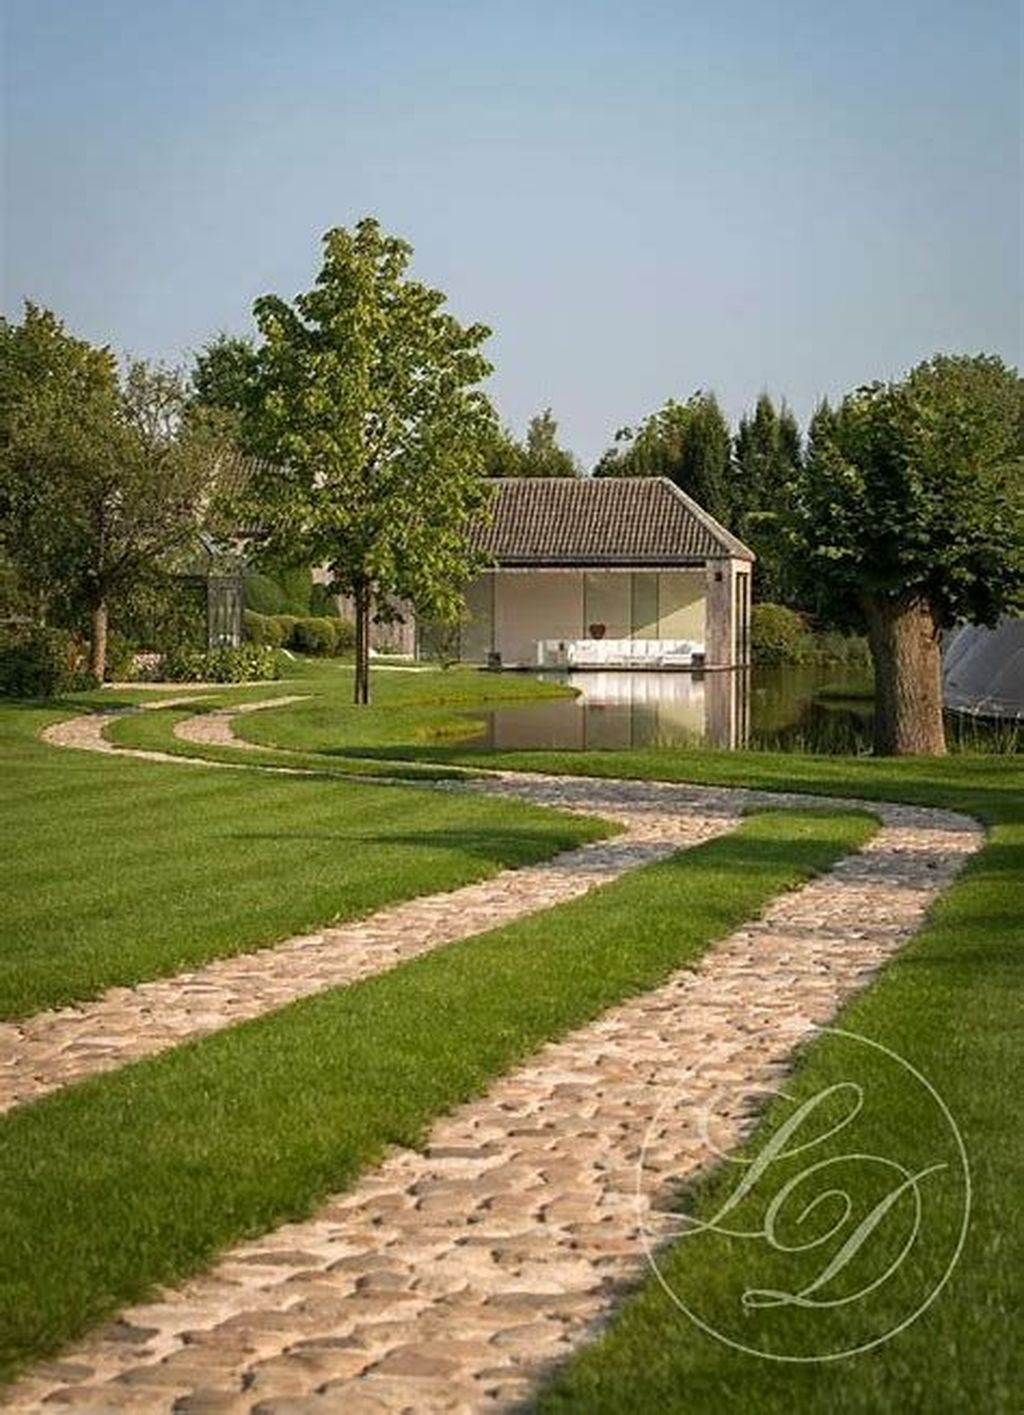 Fabulous Driveway Landscaping Design Ideas For Your Home To Try Asap 26